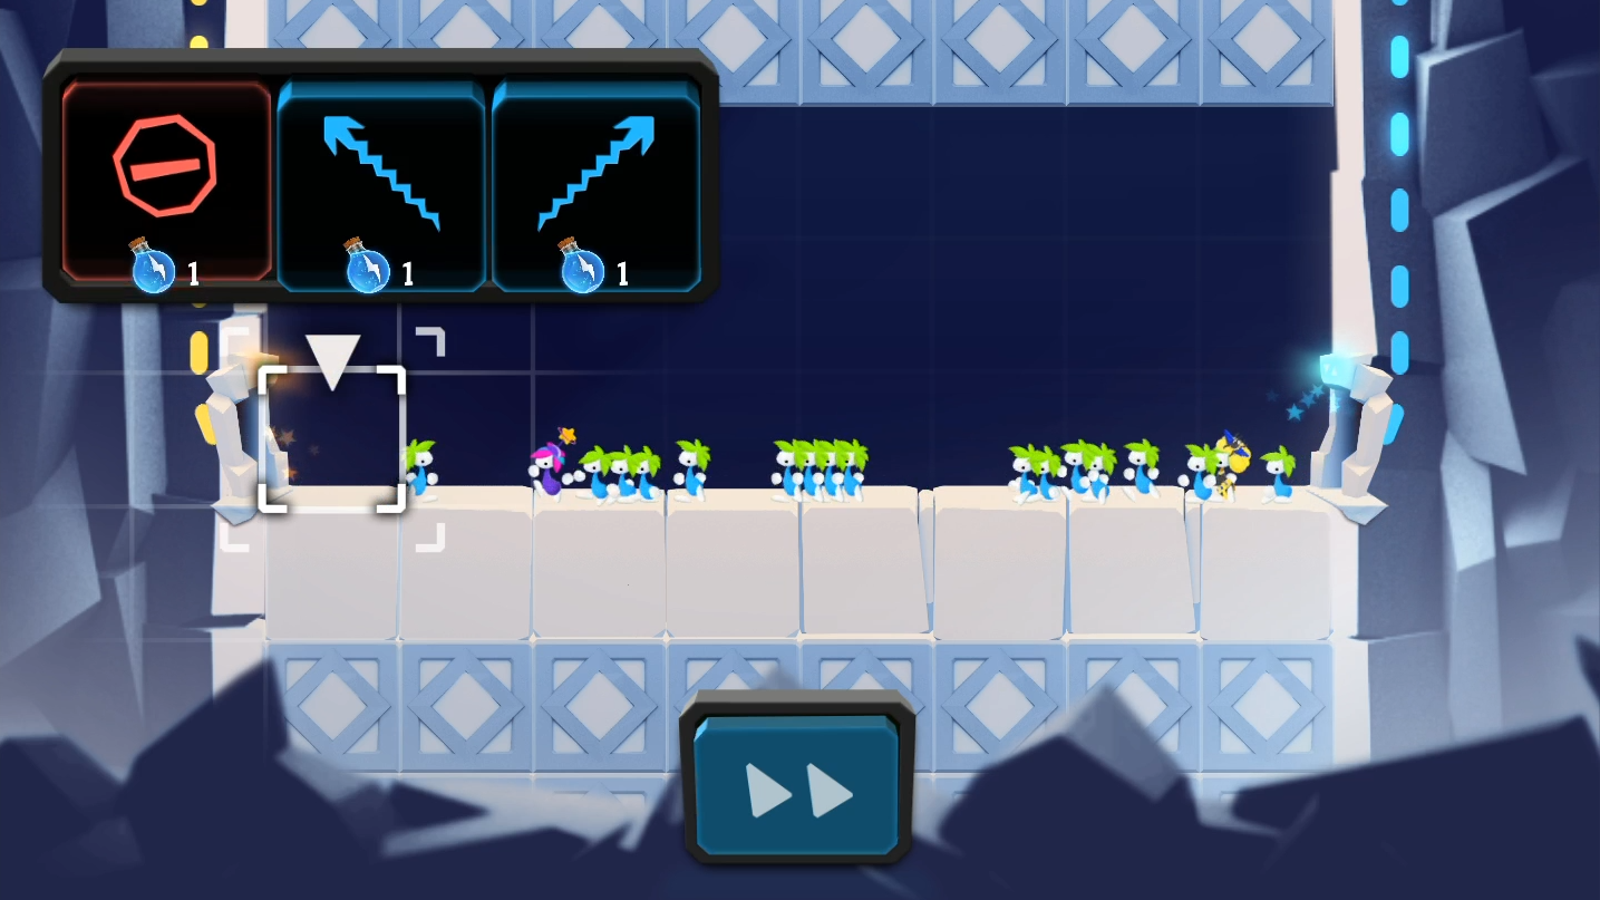 QnA VBage Try These iOS and Android 'Lemmings' Games Instead of Sony's Crappy Port